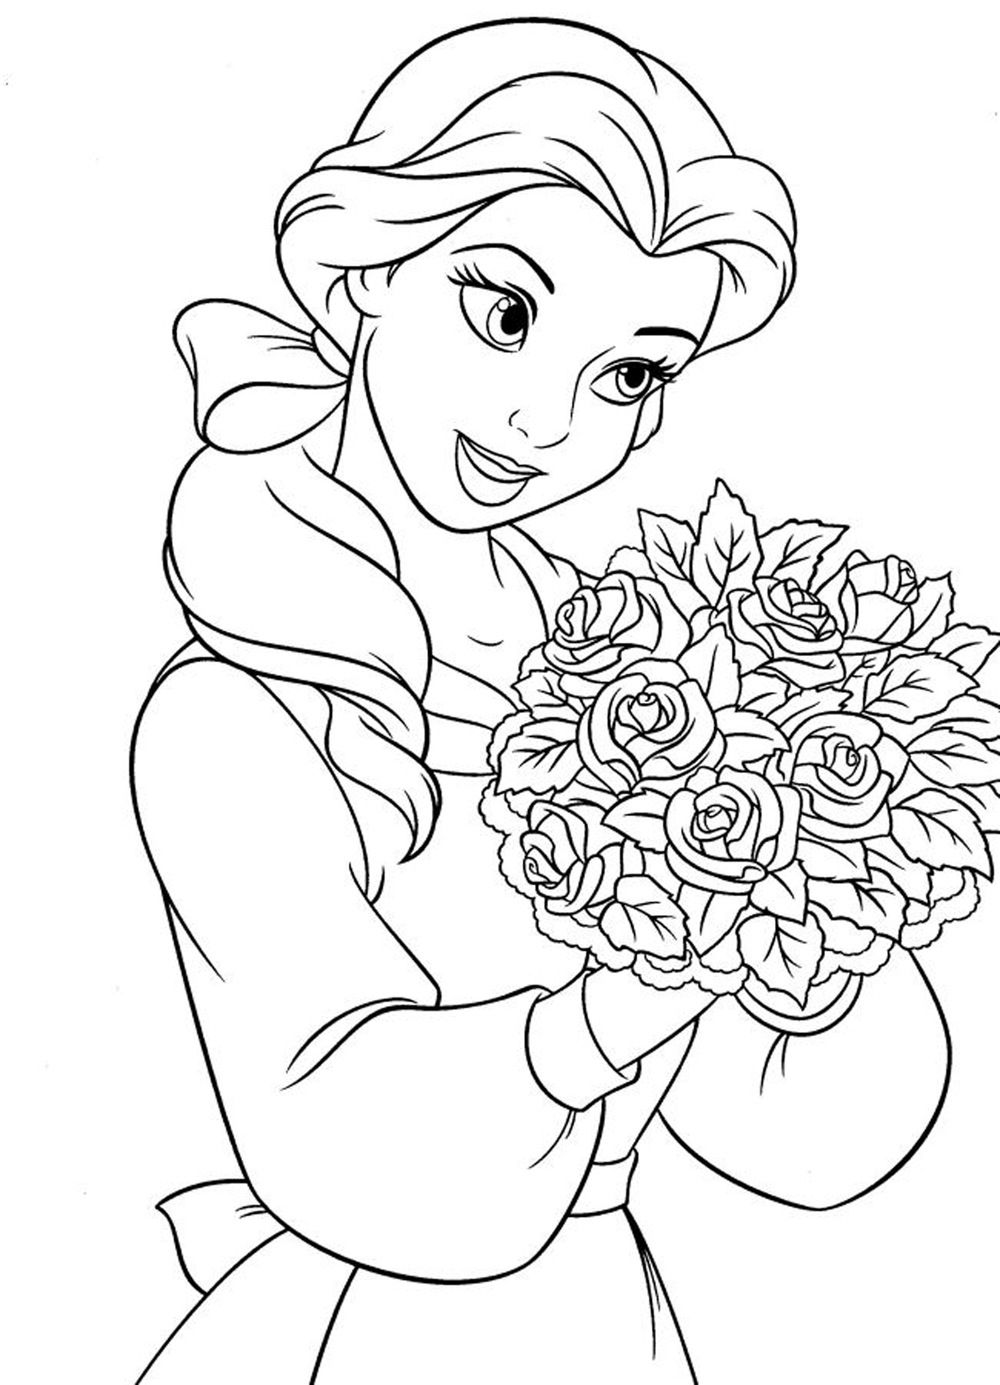 Free color pages princess - Princess Coloring Pages For Girls Free Large Images